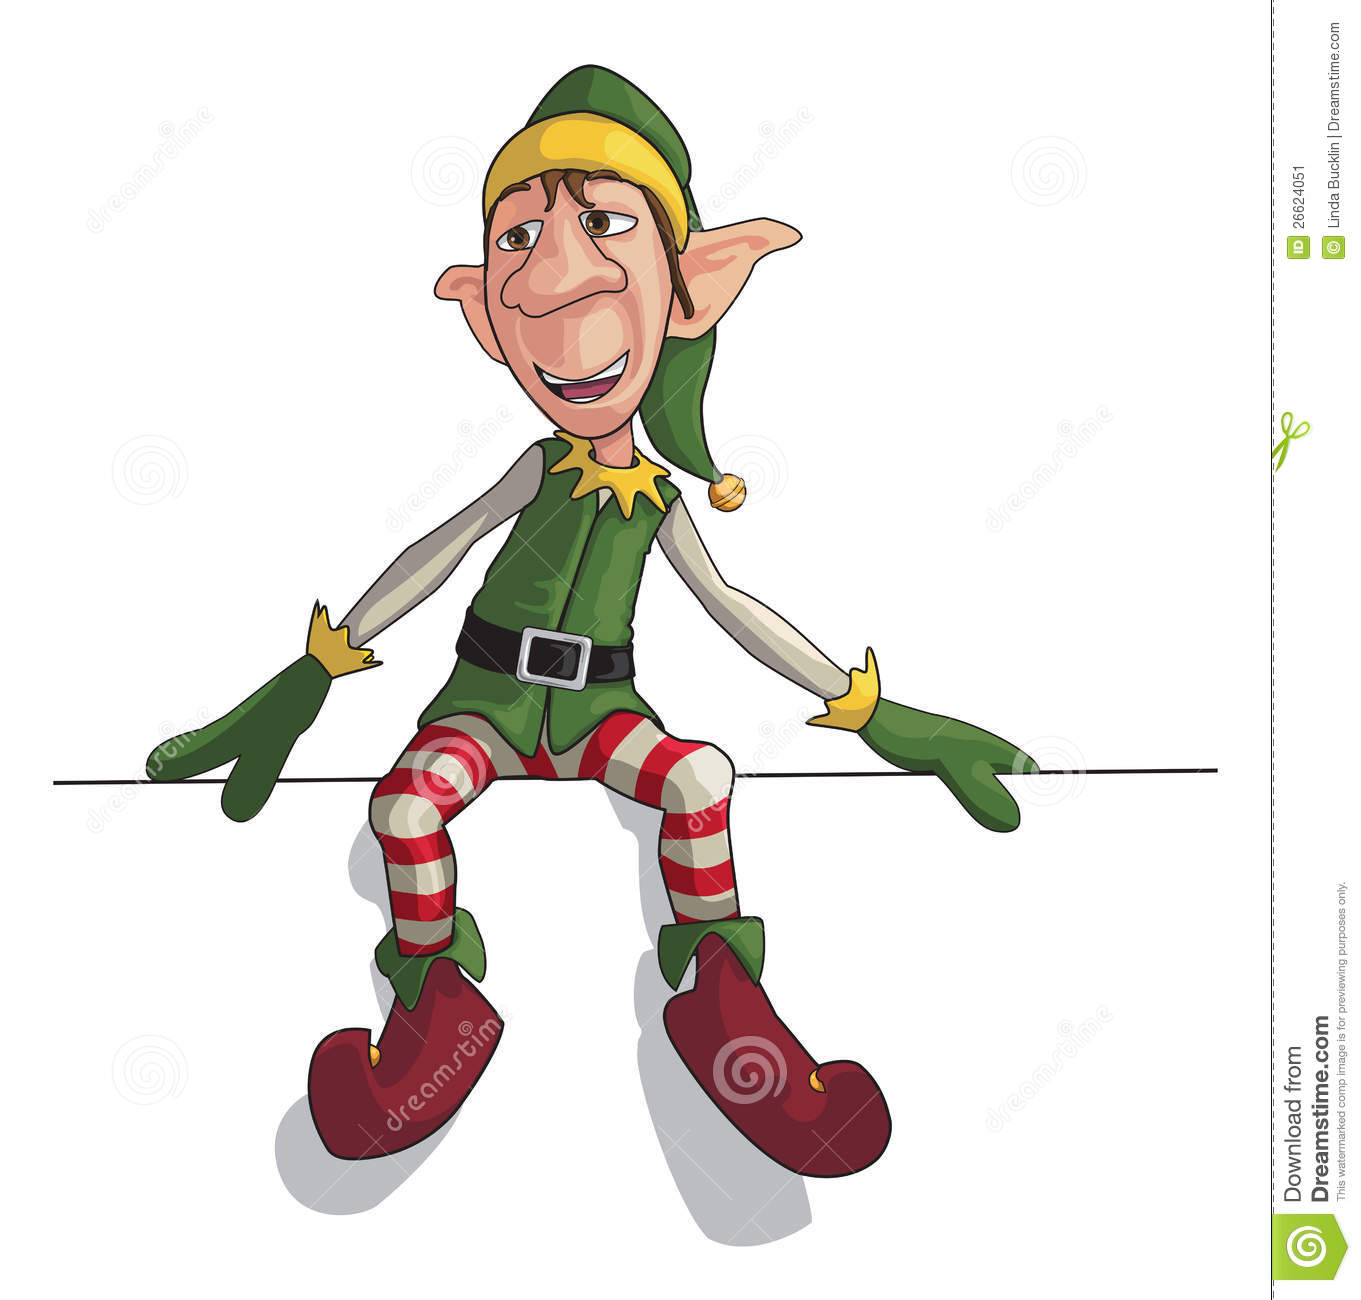 Elfen clipart skiing Elf 3403157 7 Royalty Free